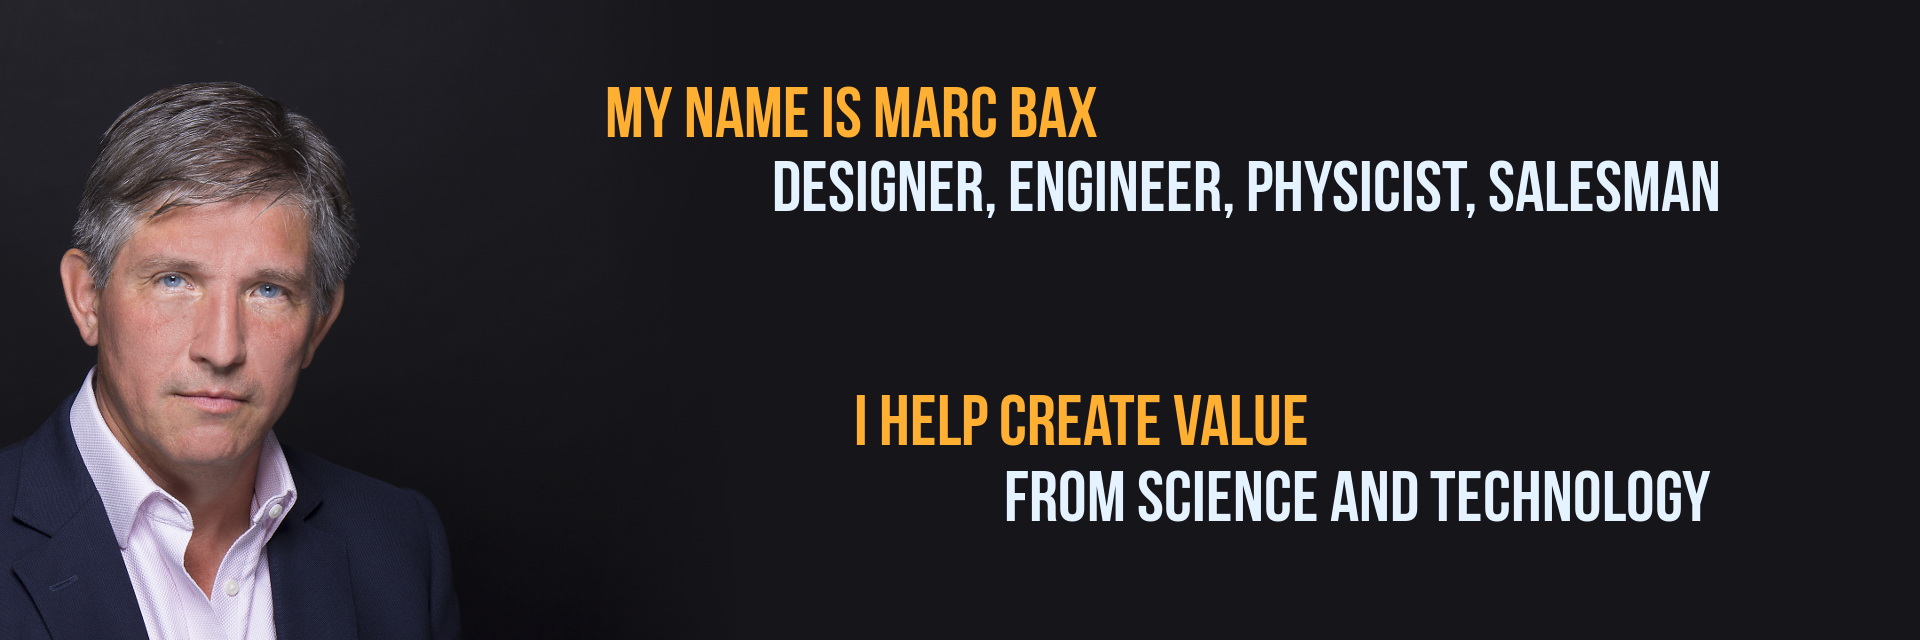 I'm Marc Bax and I do product design and development